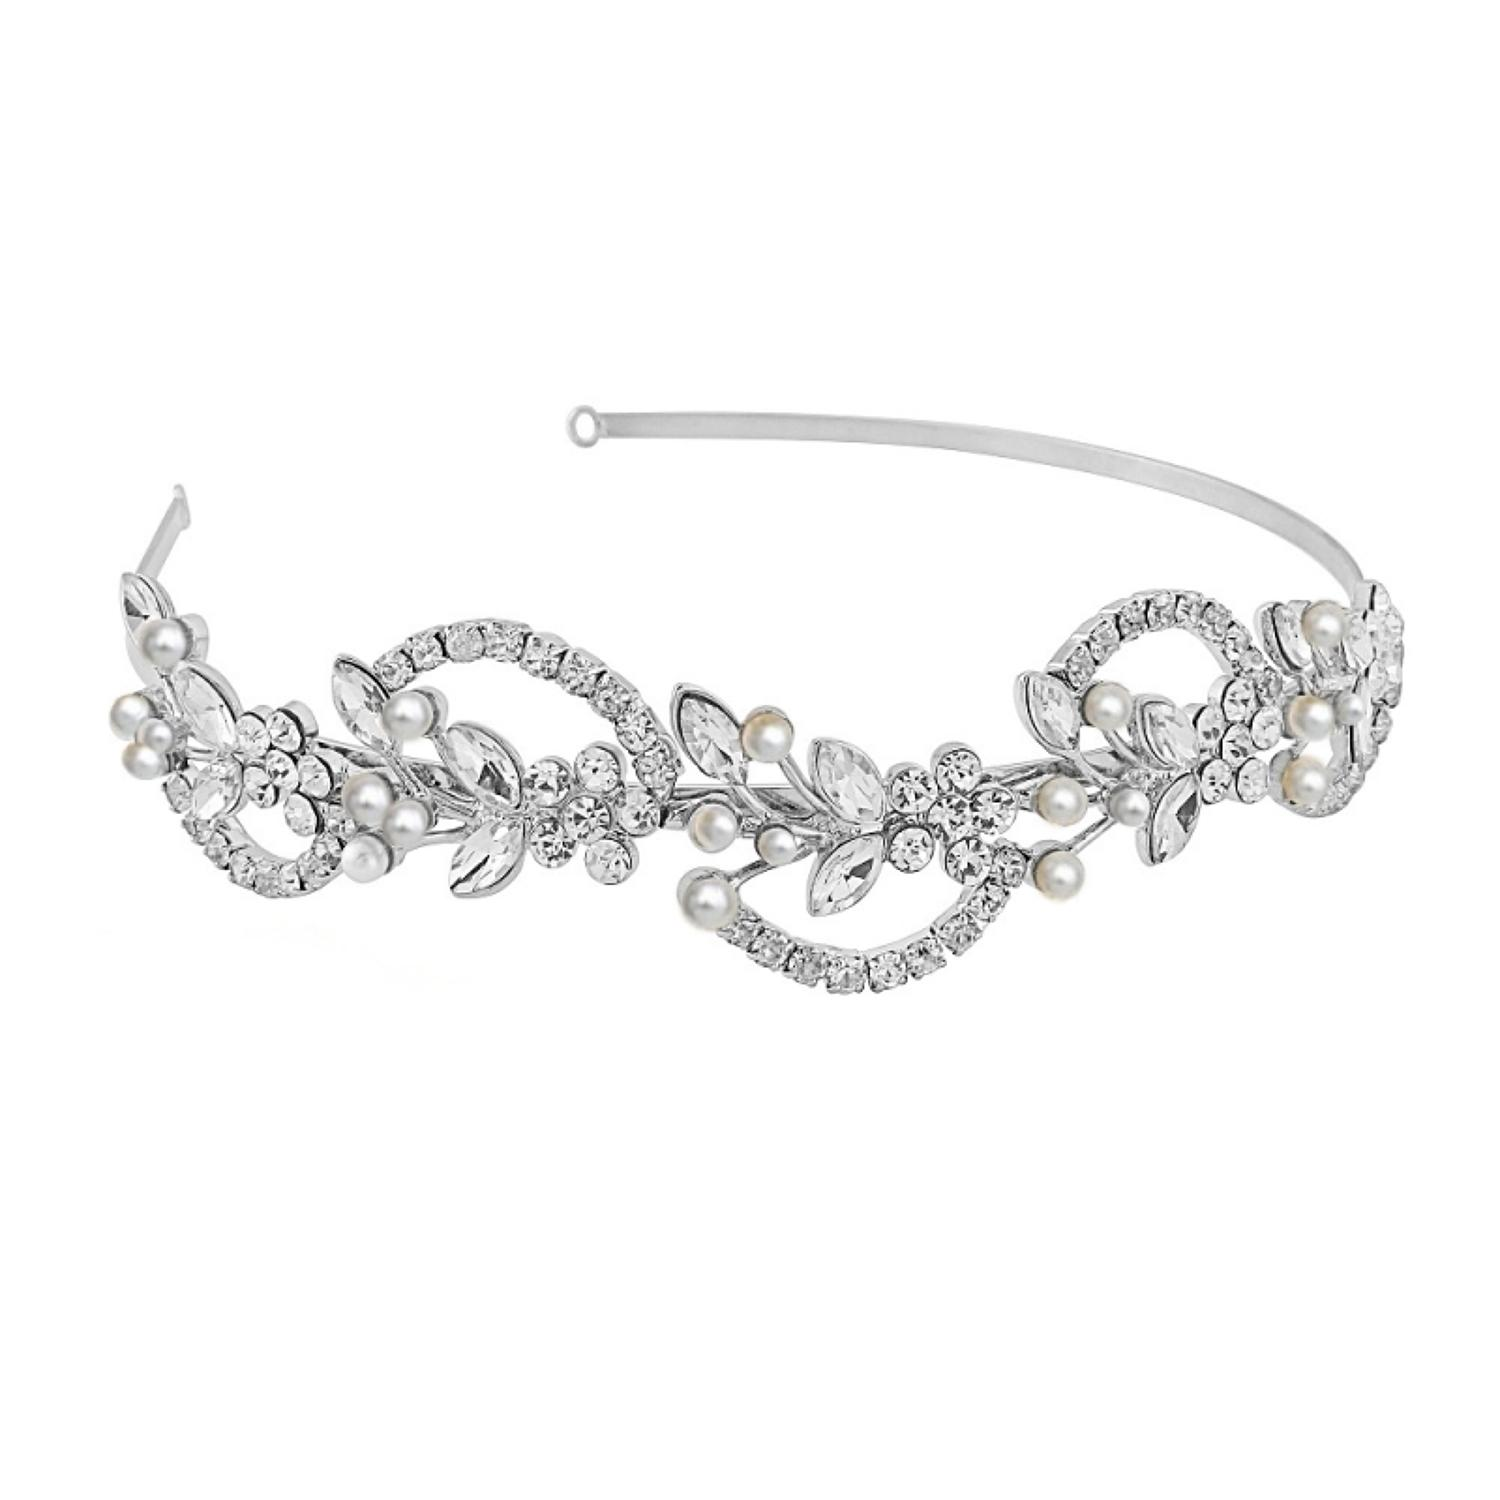 PHOEBE - Crystal Chic Hairband